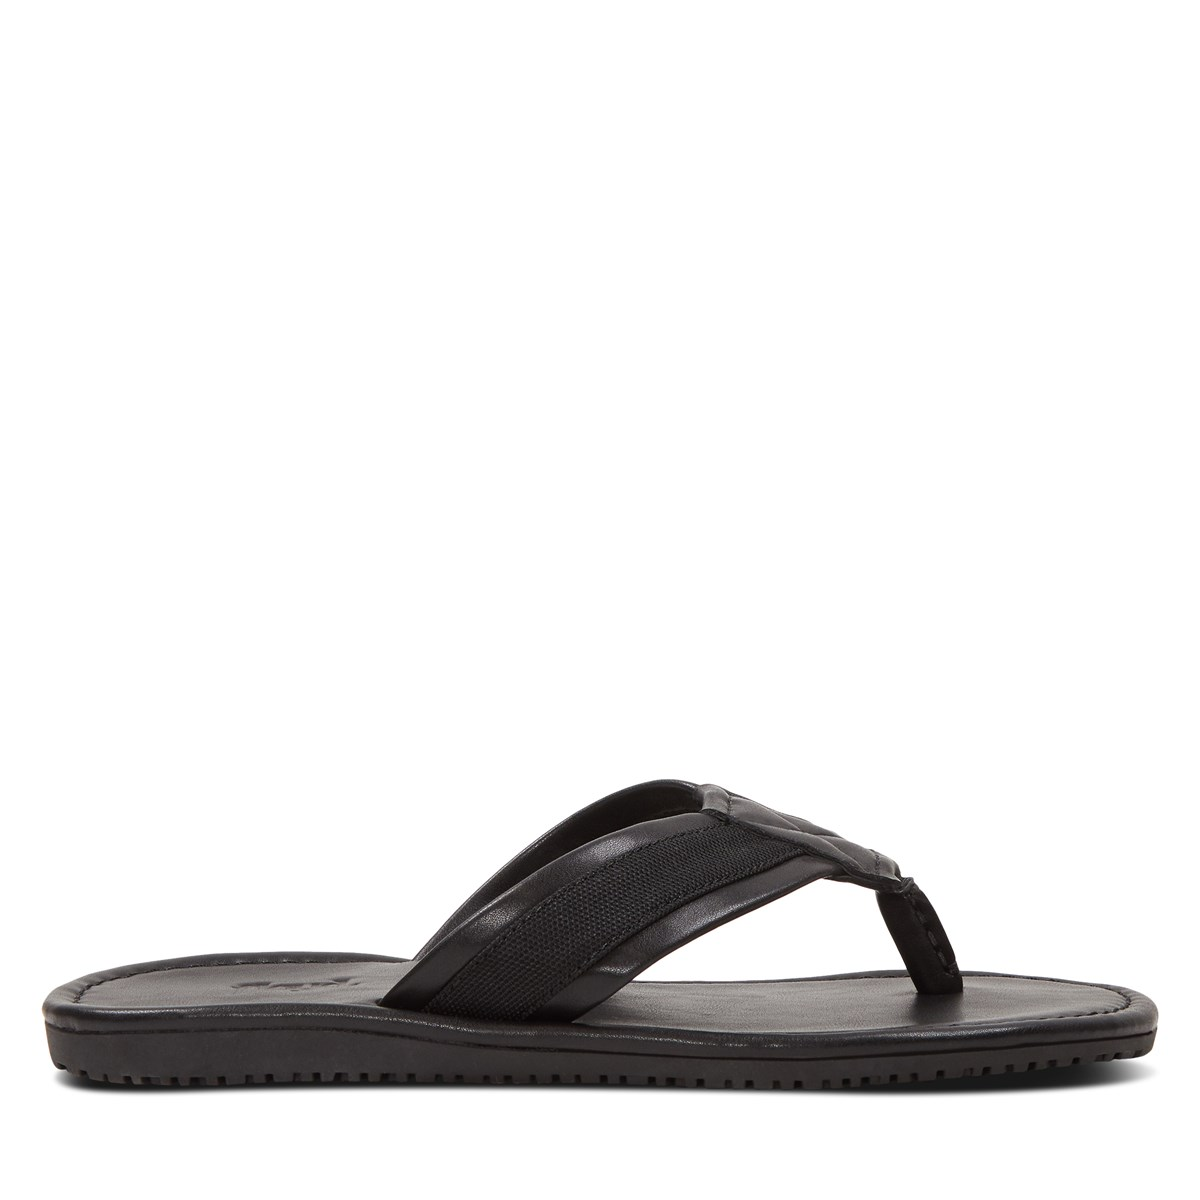 Men's Paul Flip Flops in Black